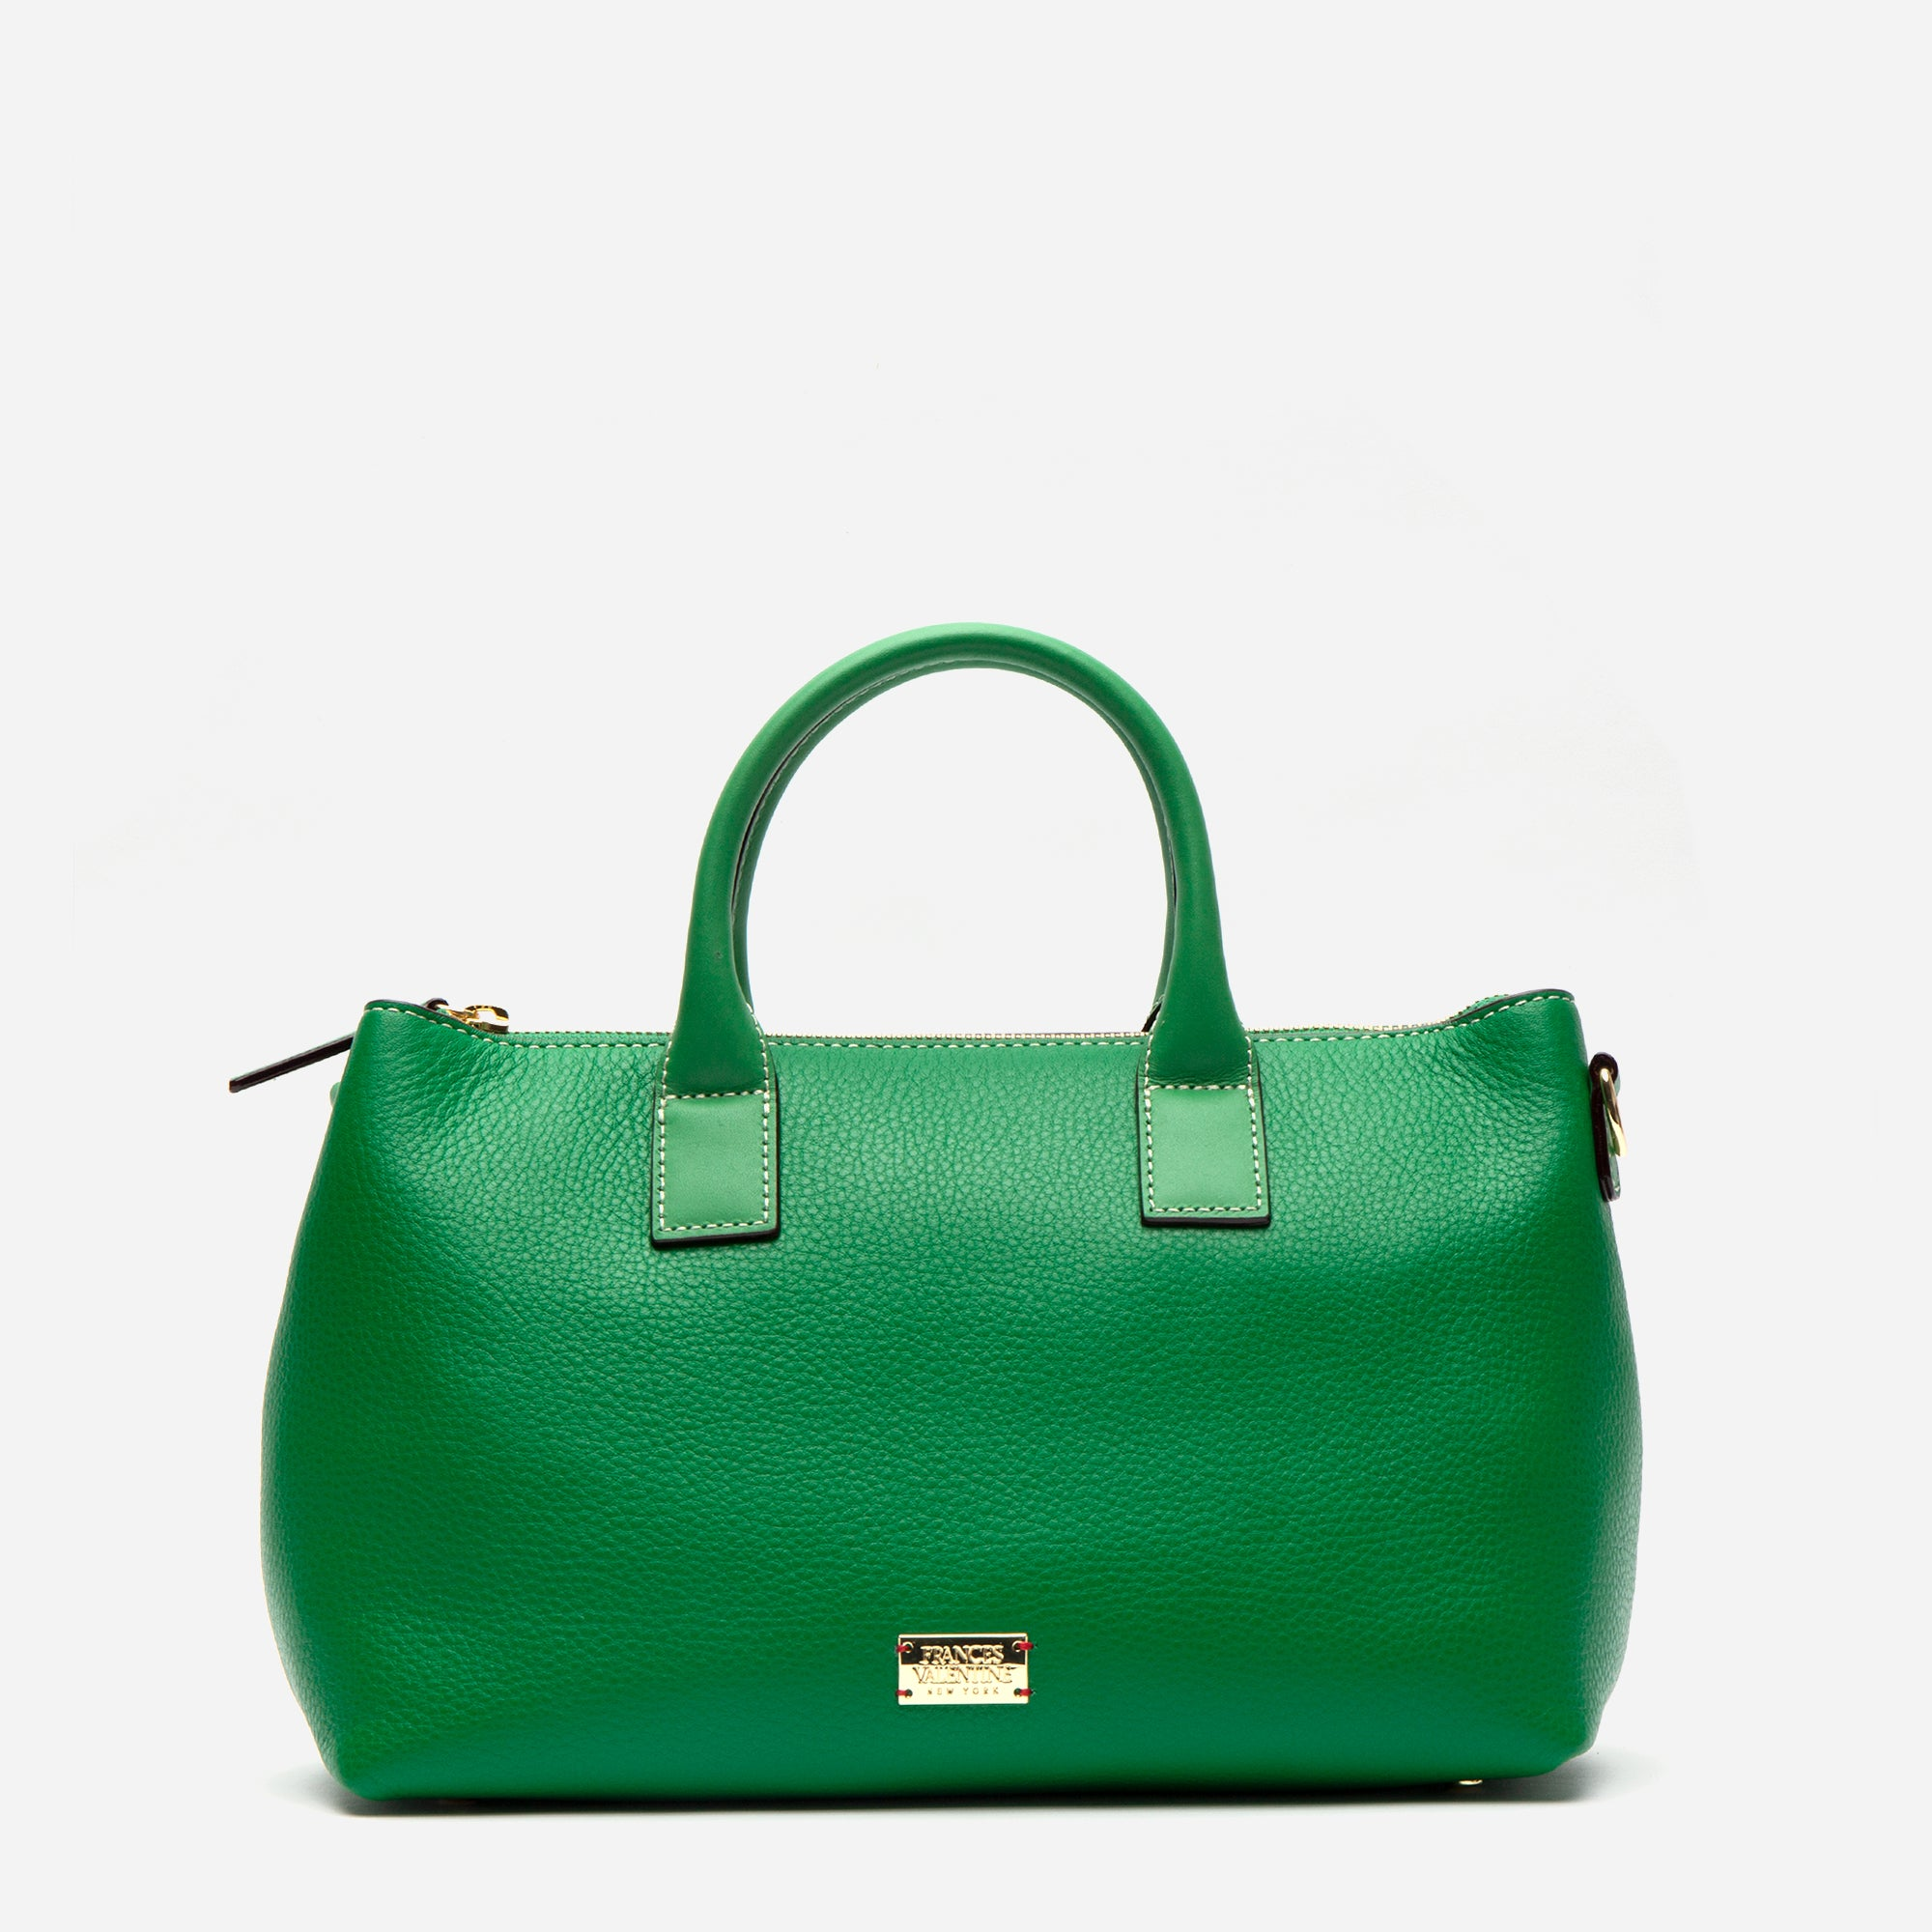 Tilly Tumbled Leather Green